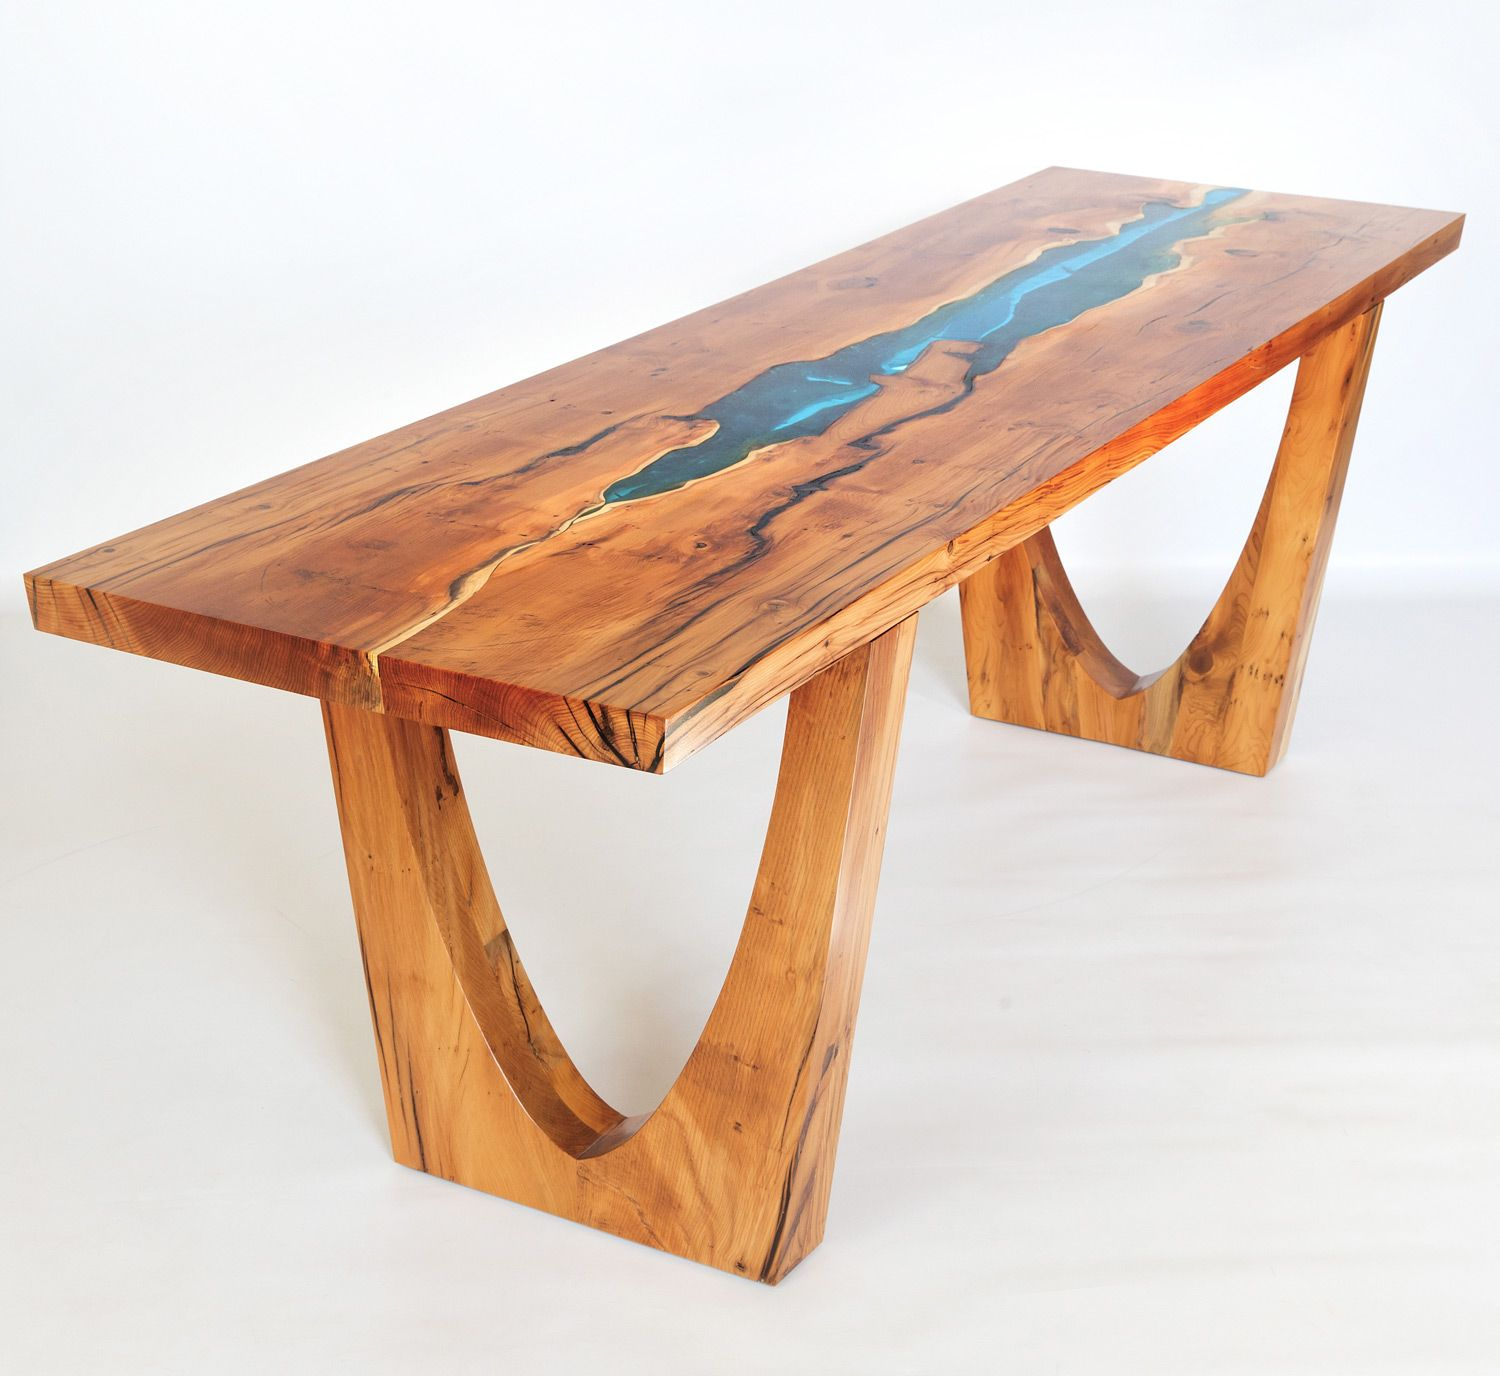 Pin By Craig Barnum On Furniture Blue Dining Tables Furniture Coffee Table Wood [ 1376 x 1500 Pixel ]